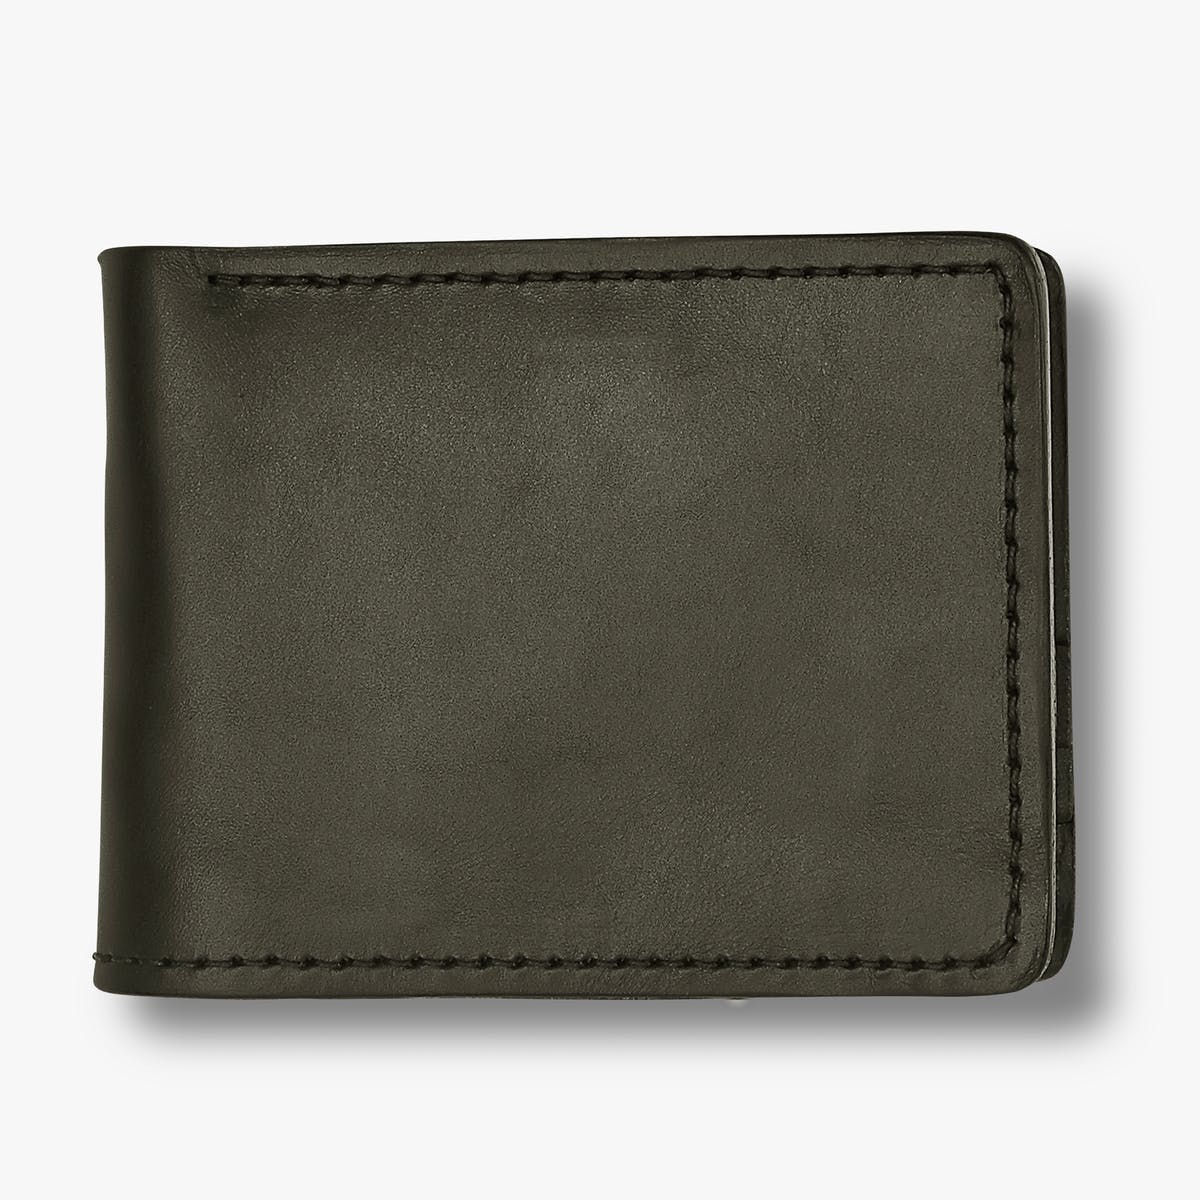 Filson Bi-Fold Leather Wallet